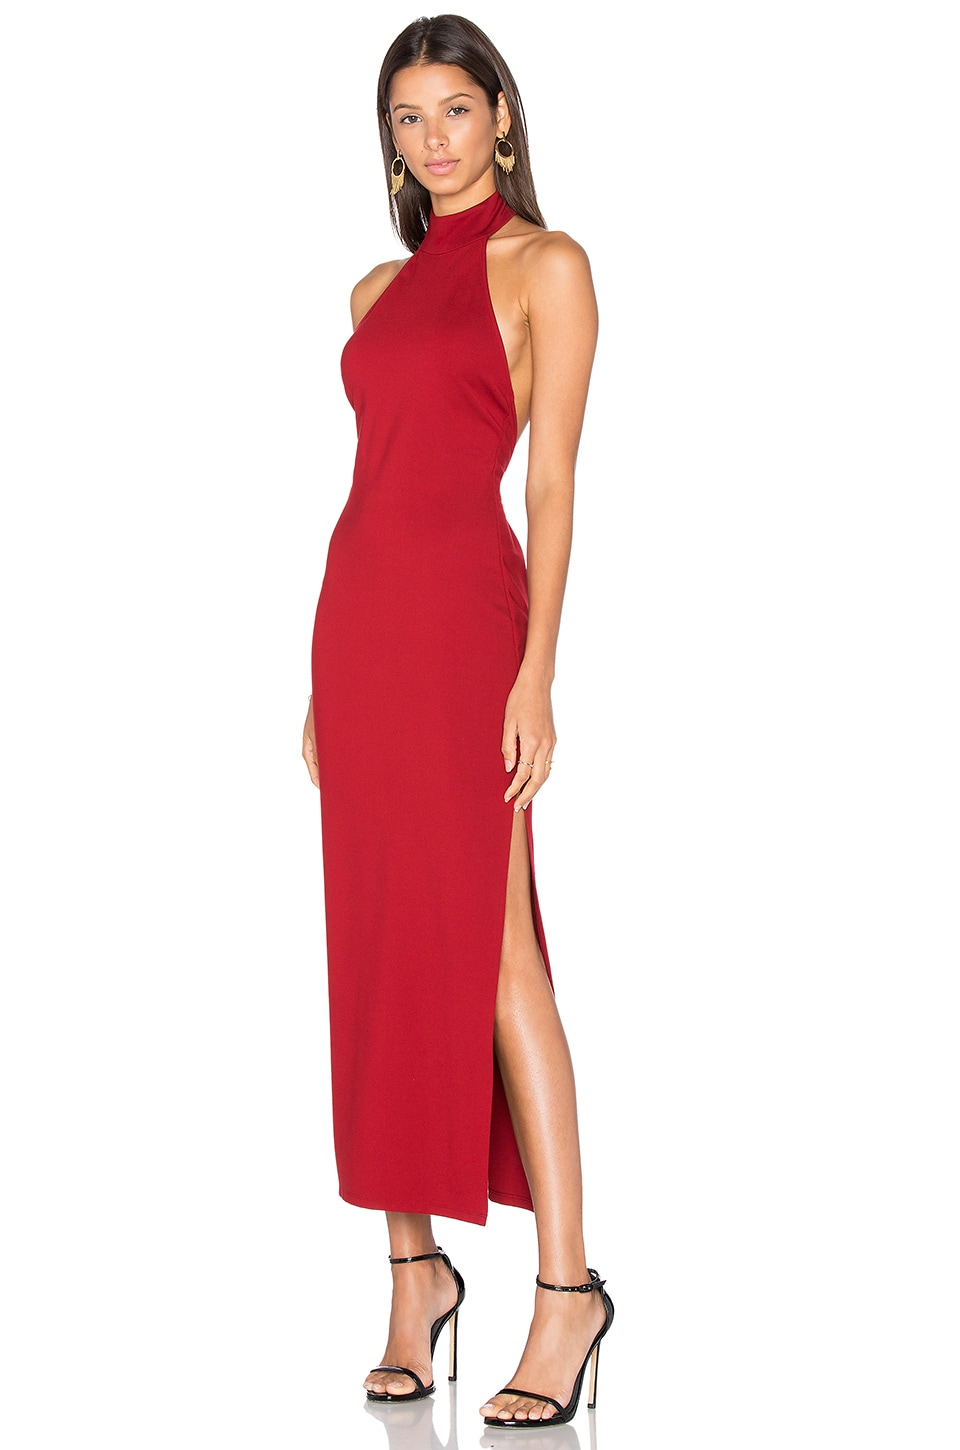 LPA Dress 47 in Oxblood